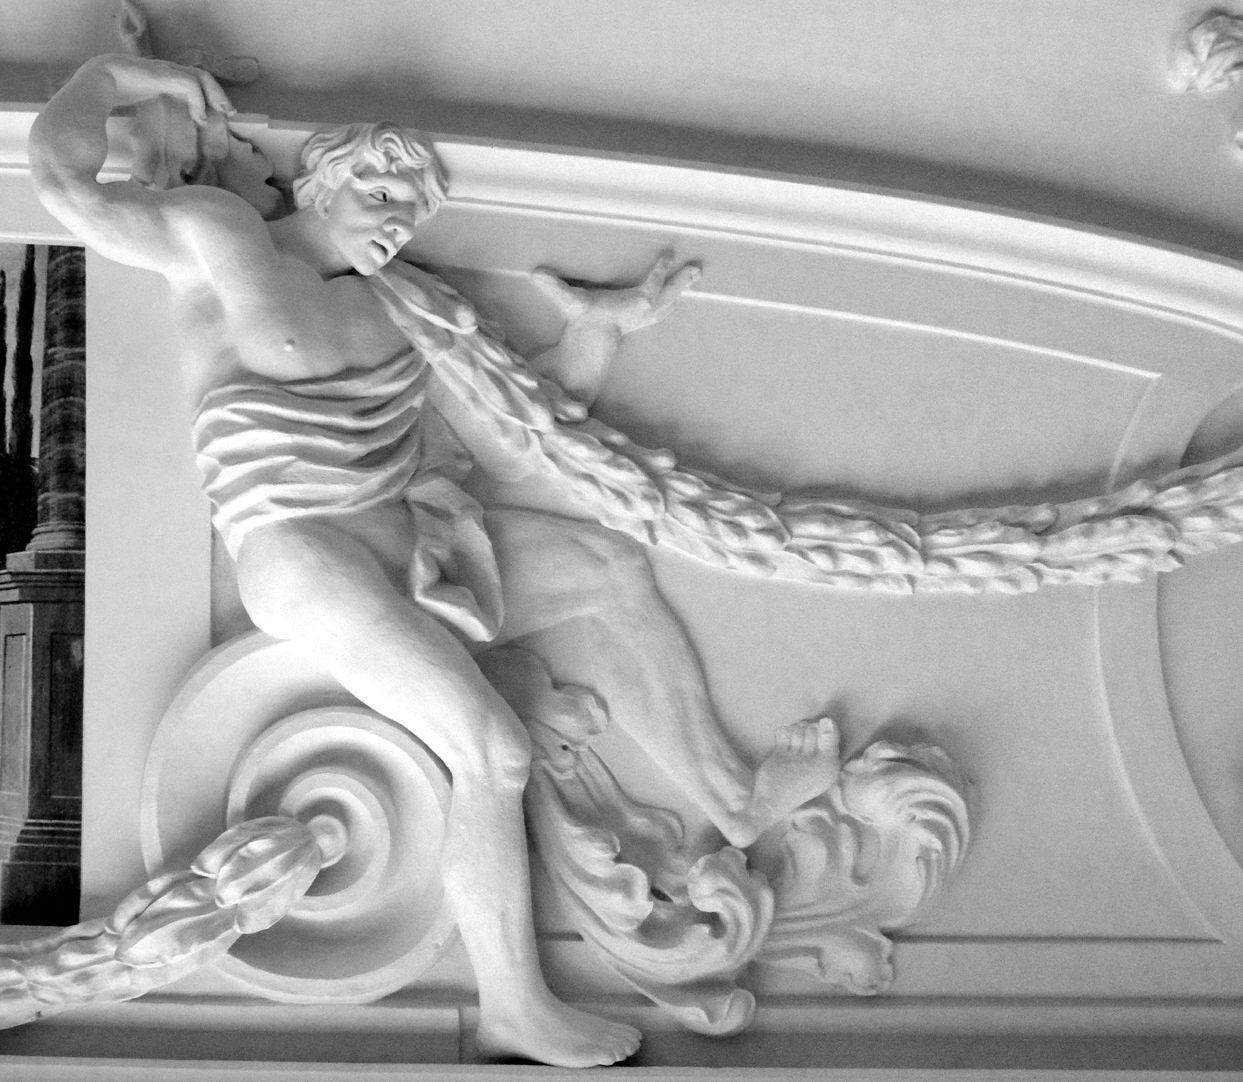 Stucco ceiling from the garden hall of the former Merkel estate Man with a garland sitting on a volute in the north east part of the ceiling